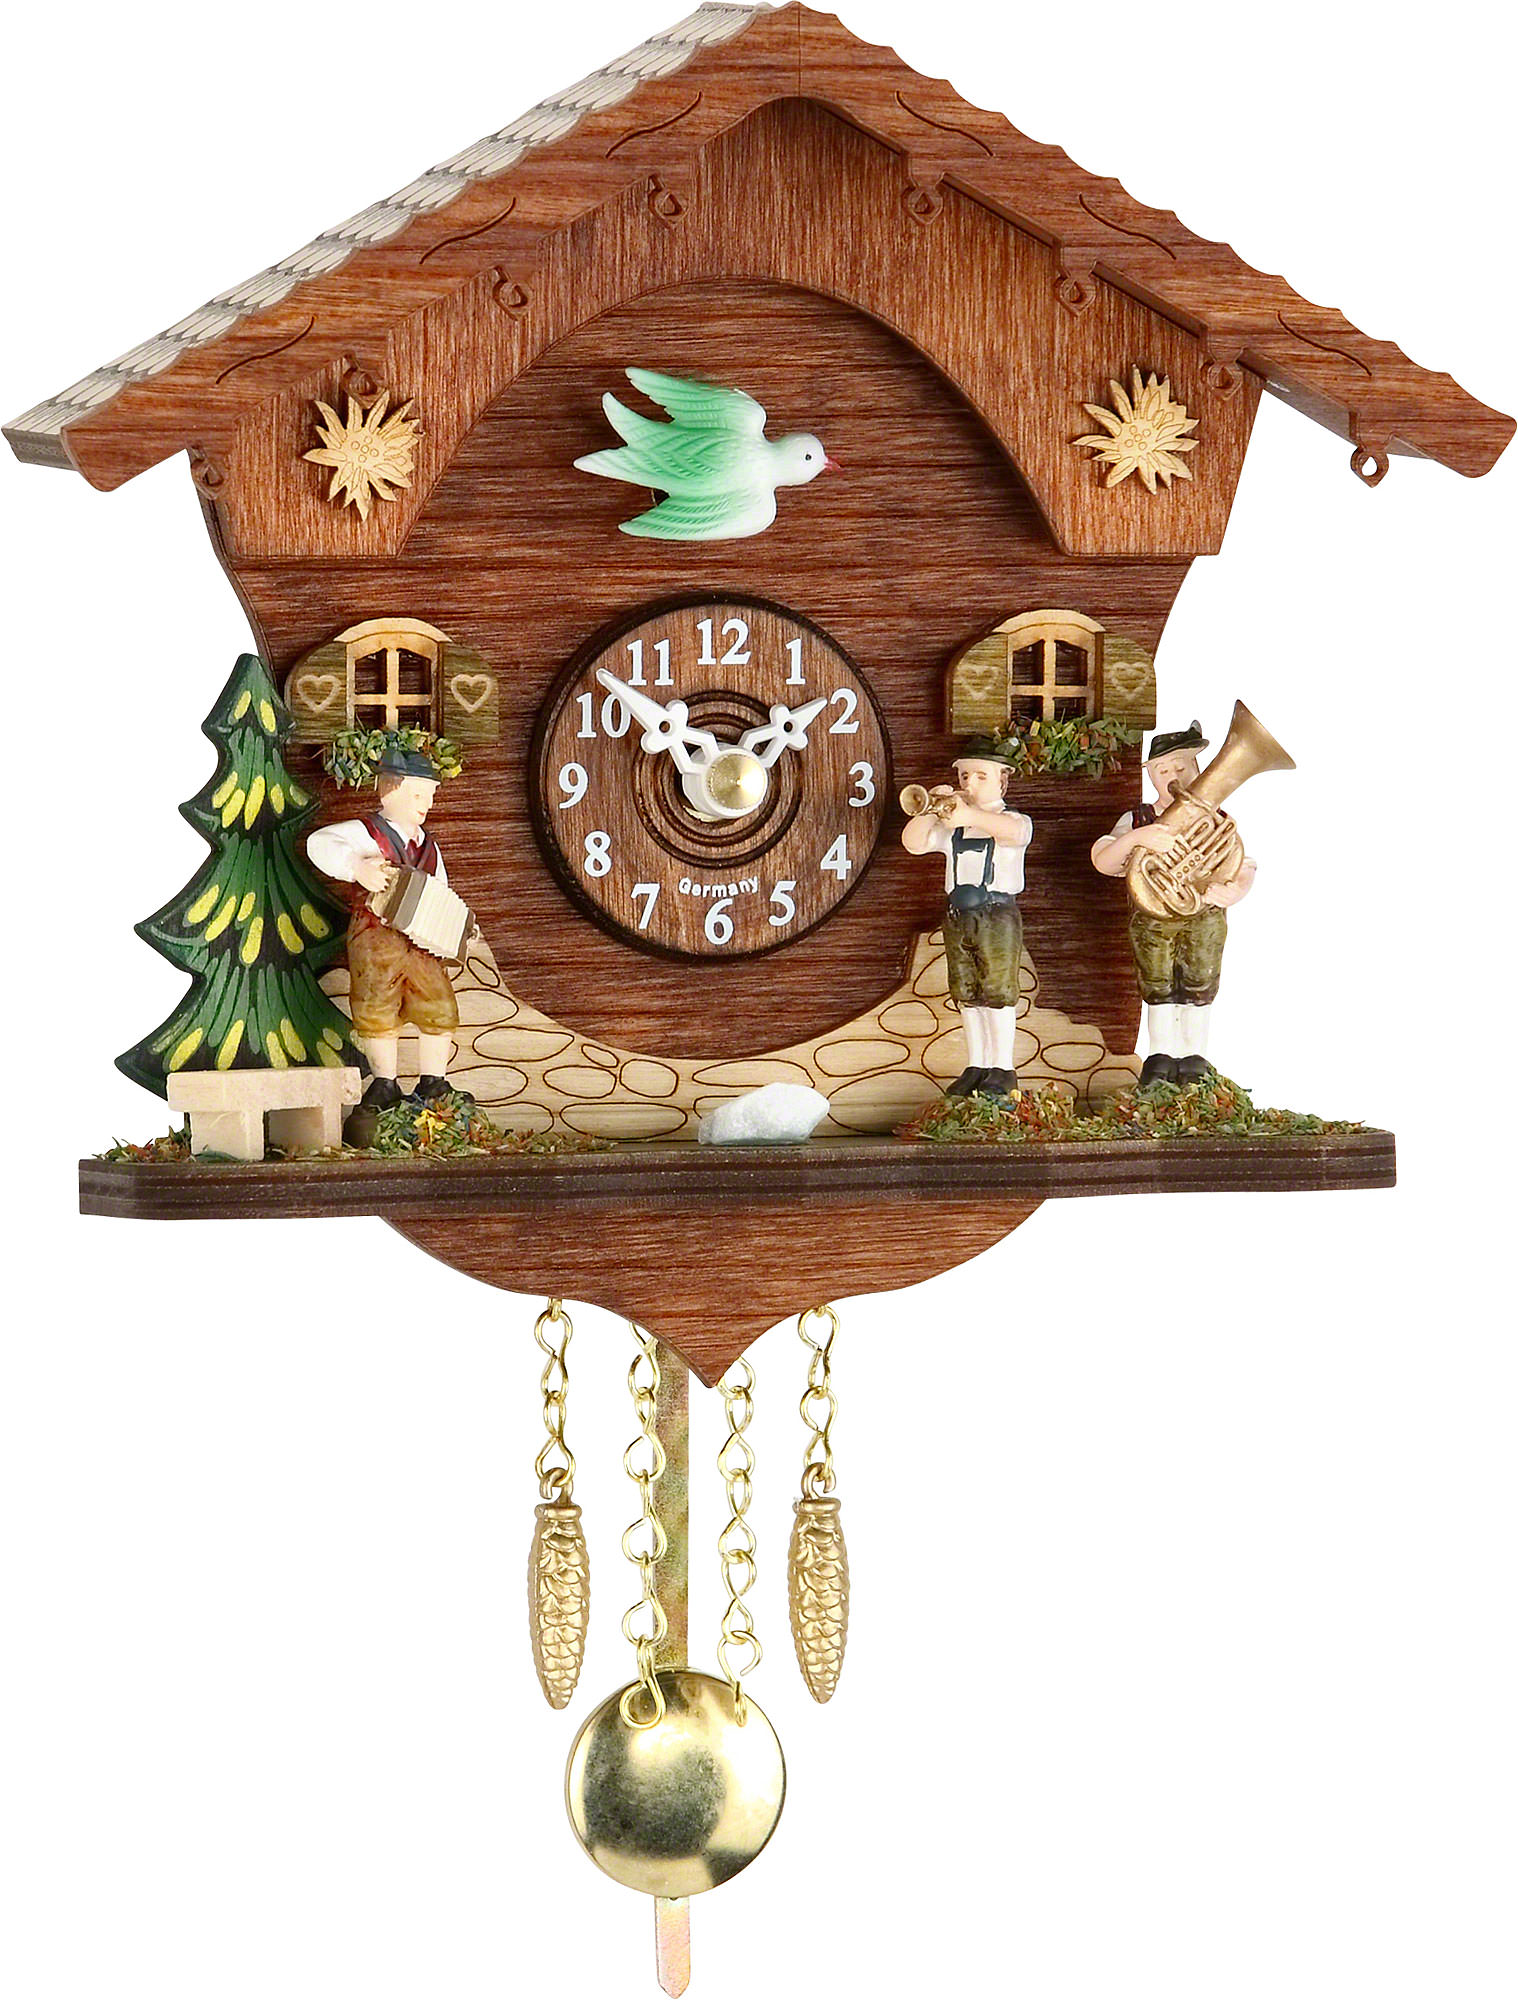 Cuckoo clock quartz movement black forest pendulum clock style 15cm by trenkle uhren 2045pq - Cuckoo clock pendulum ...